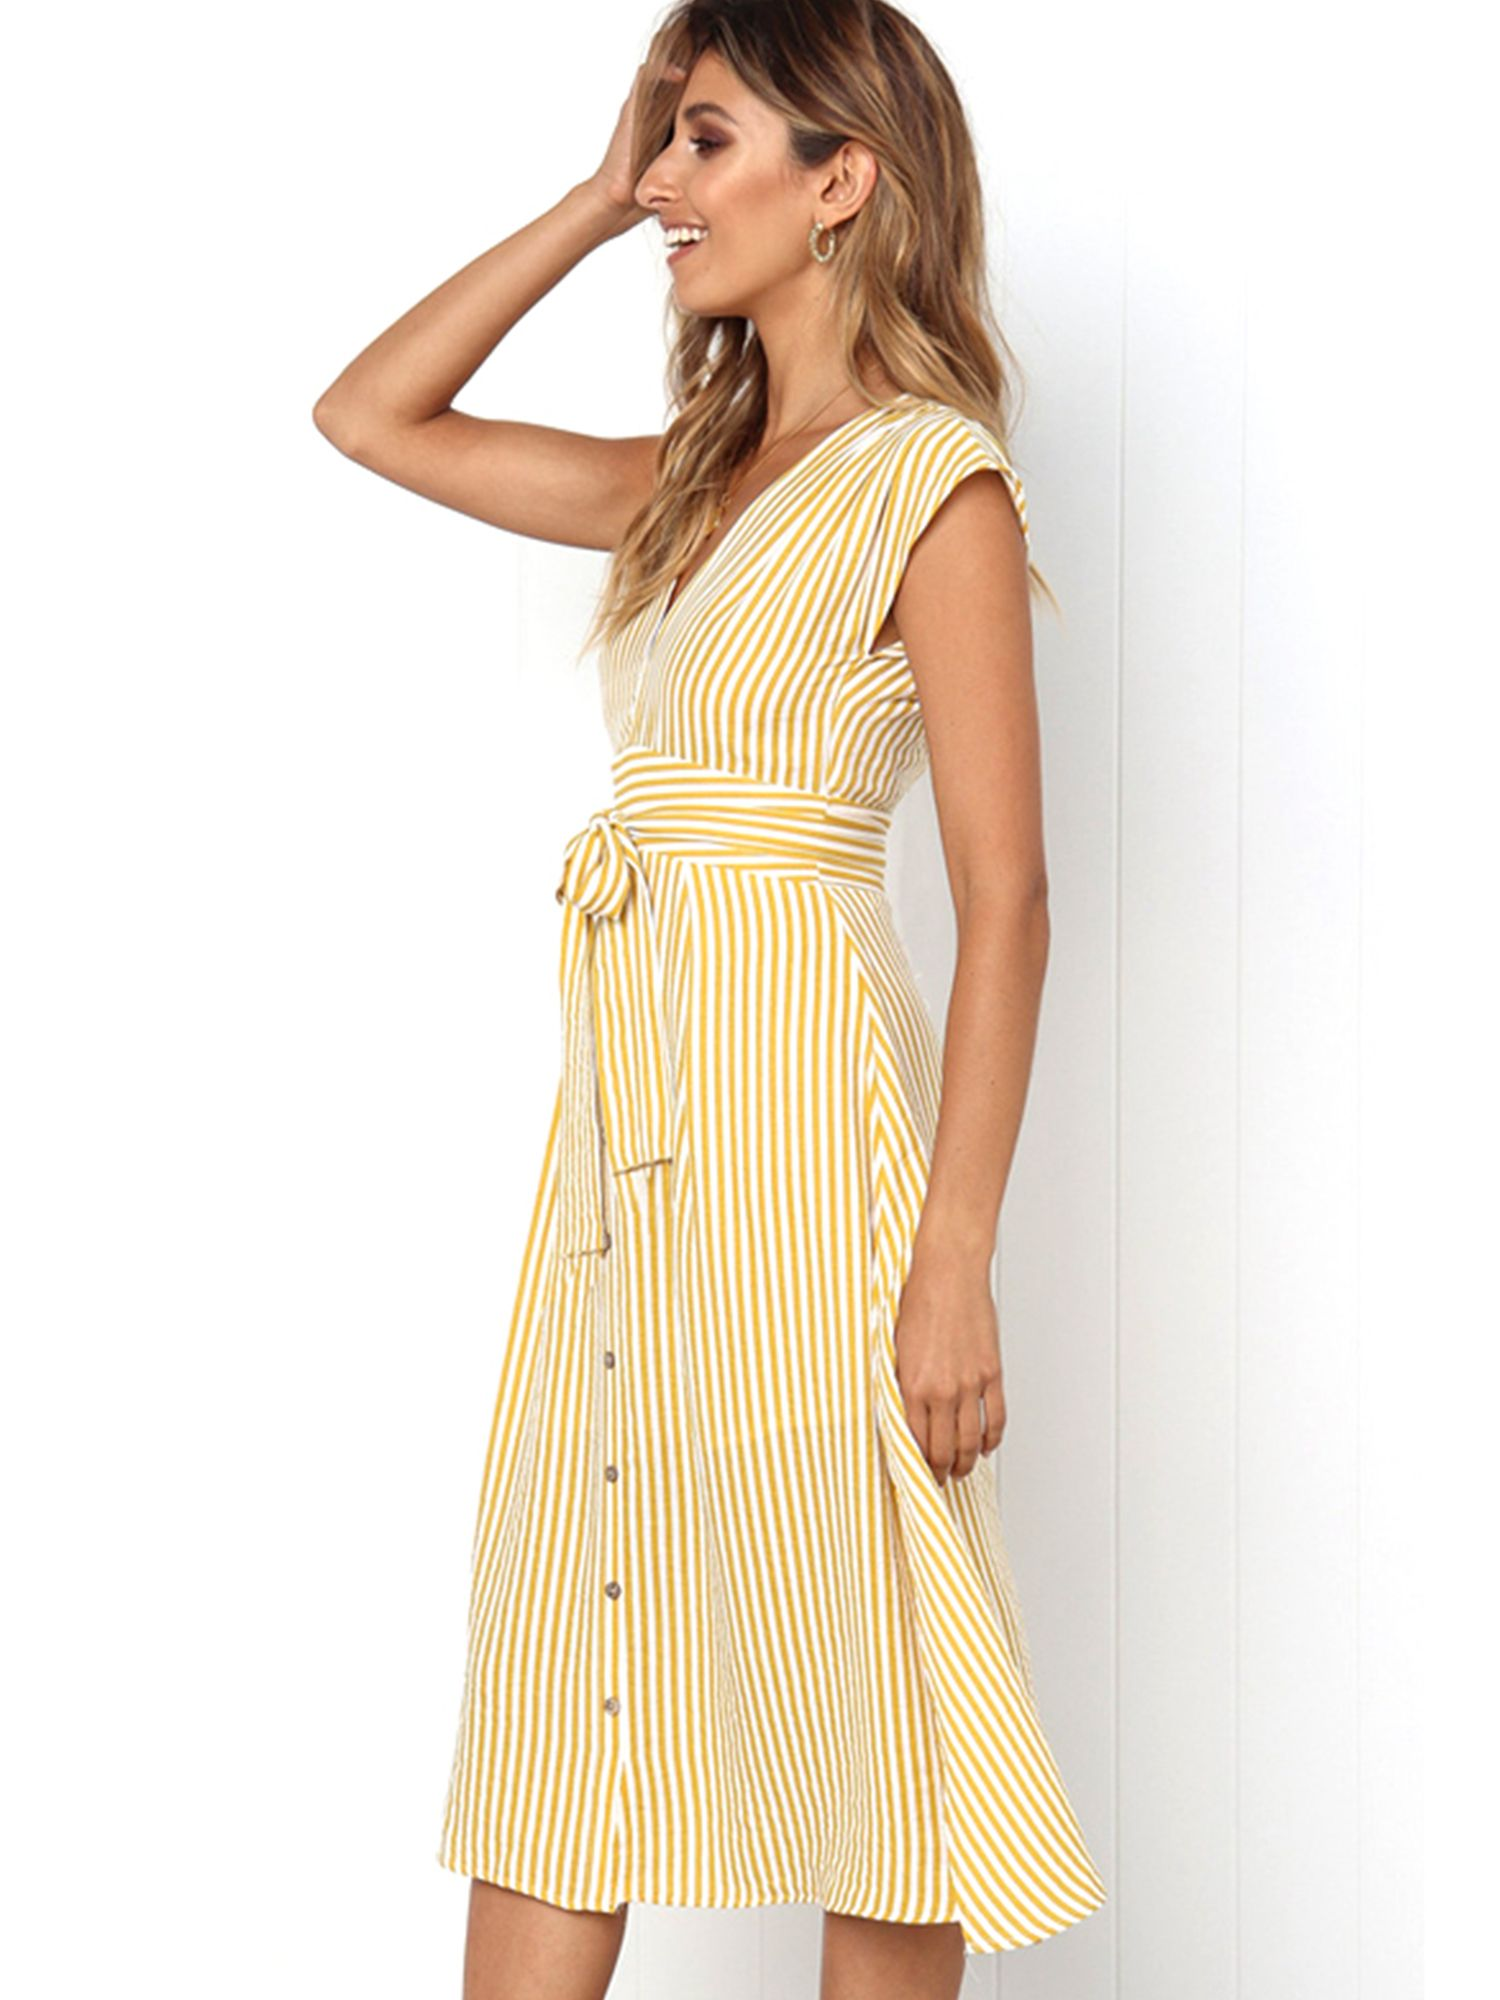 Wodstyle Women S Sleeveless V Neck Casual Party Beach Midi Dress Walmart Com Casual Dress Outfits Casual Dresses For Women Striped Dress Fall [ 2000 x 1500 Pixel ]